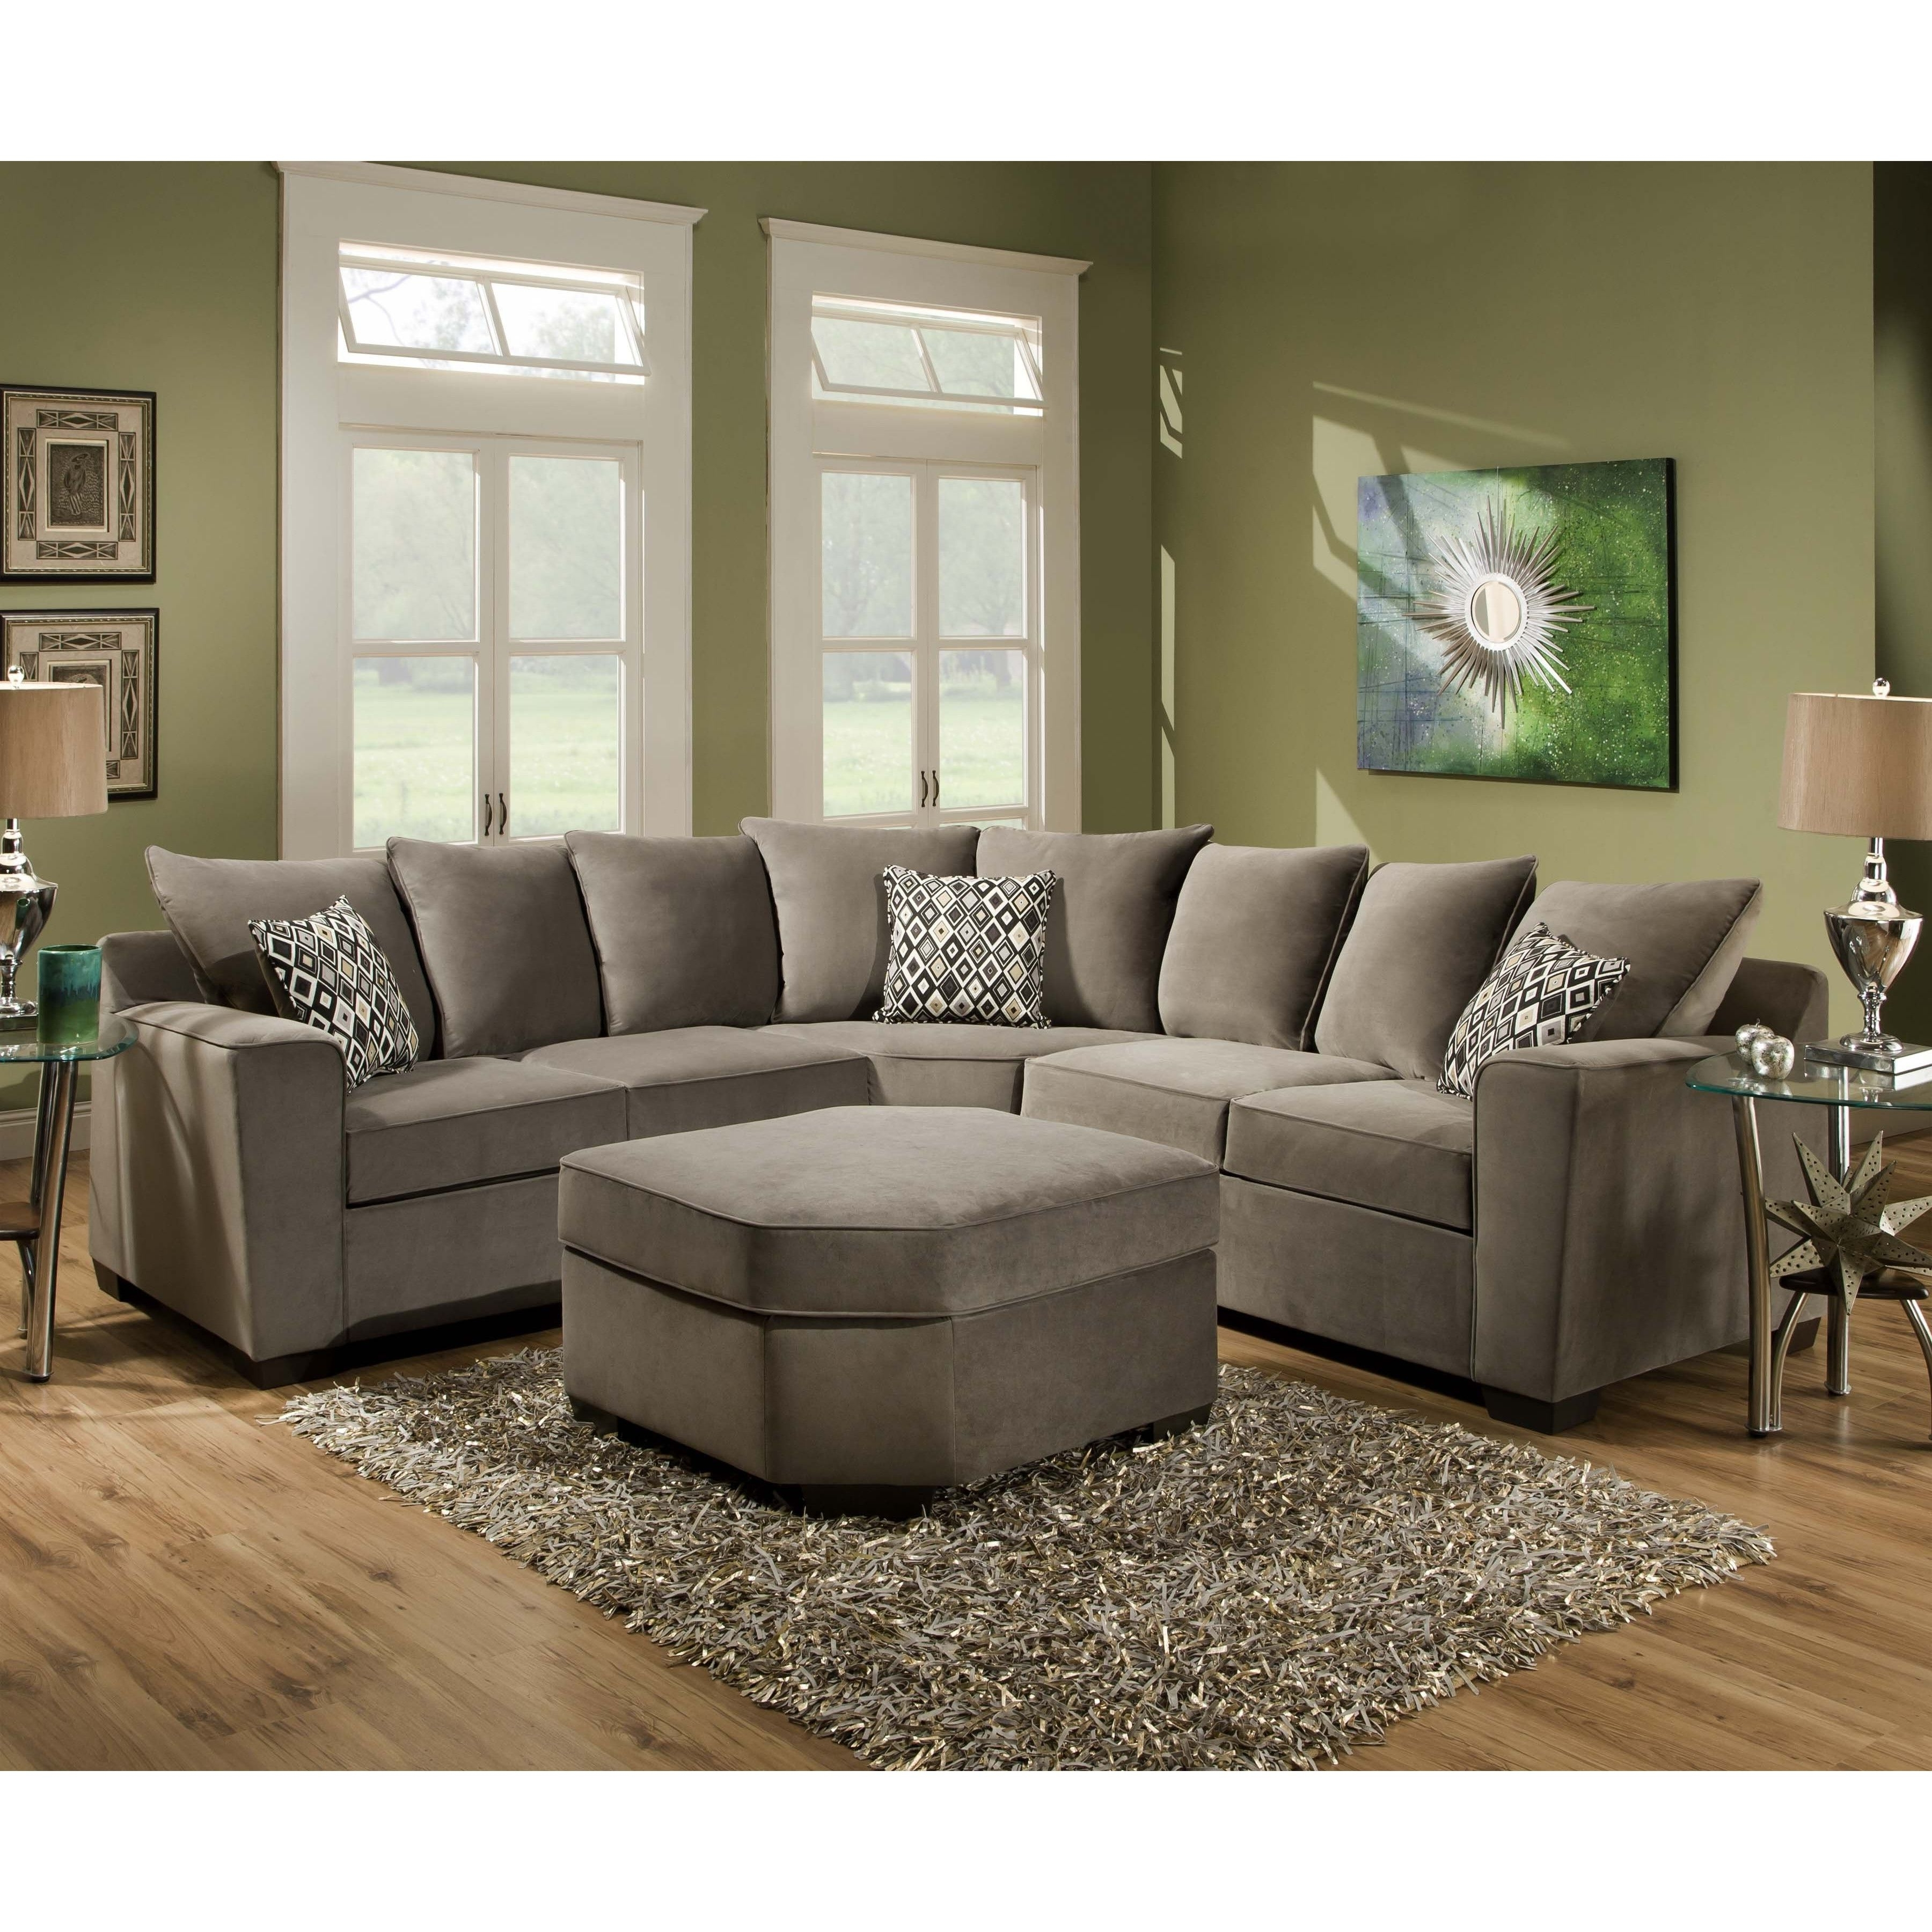 Recent Roanoke Va Sectional Sofas Throughout French Country Sectional Sofas (View 9 of 15)